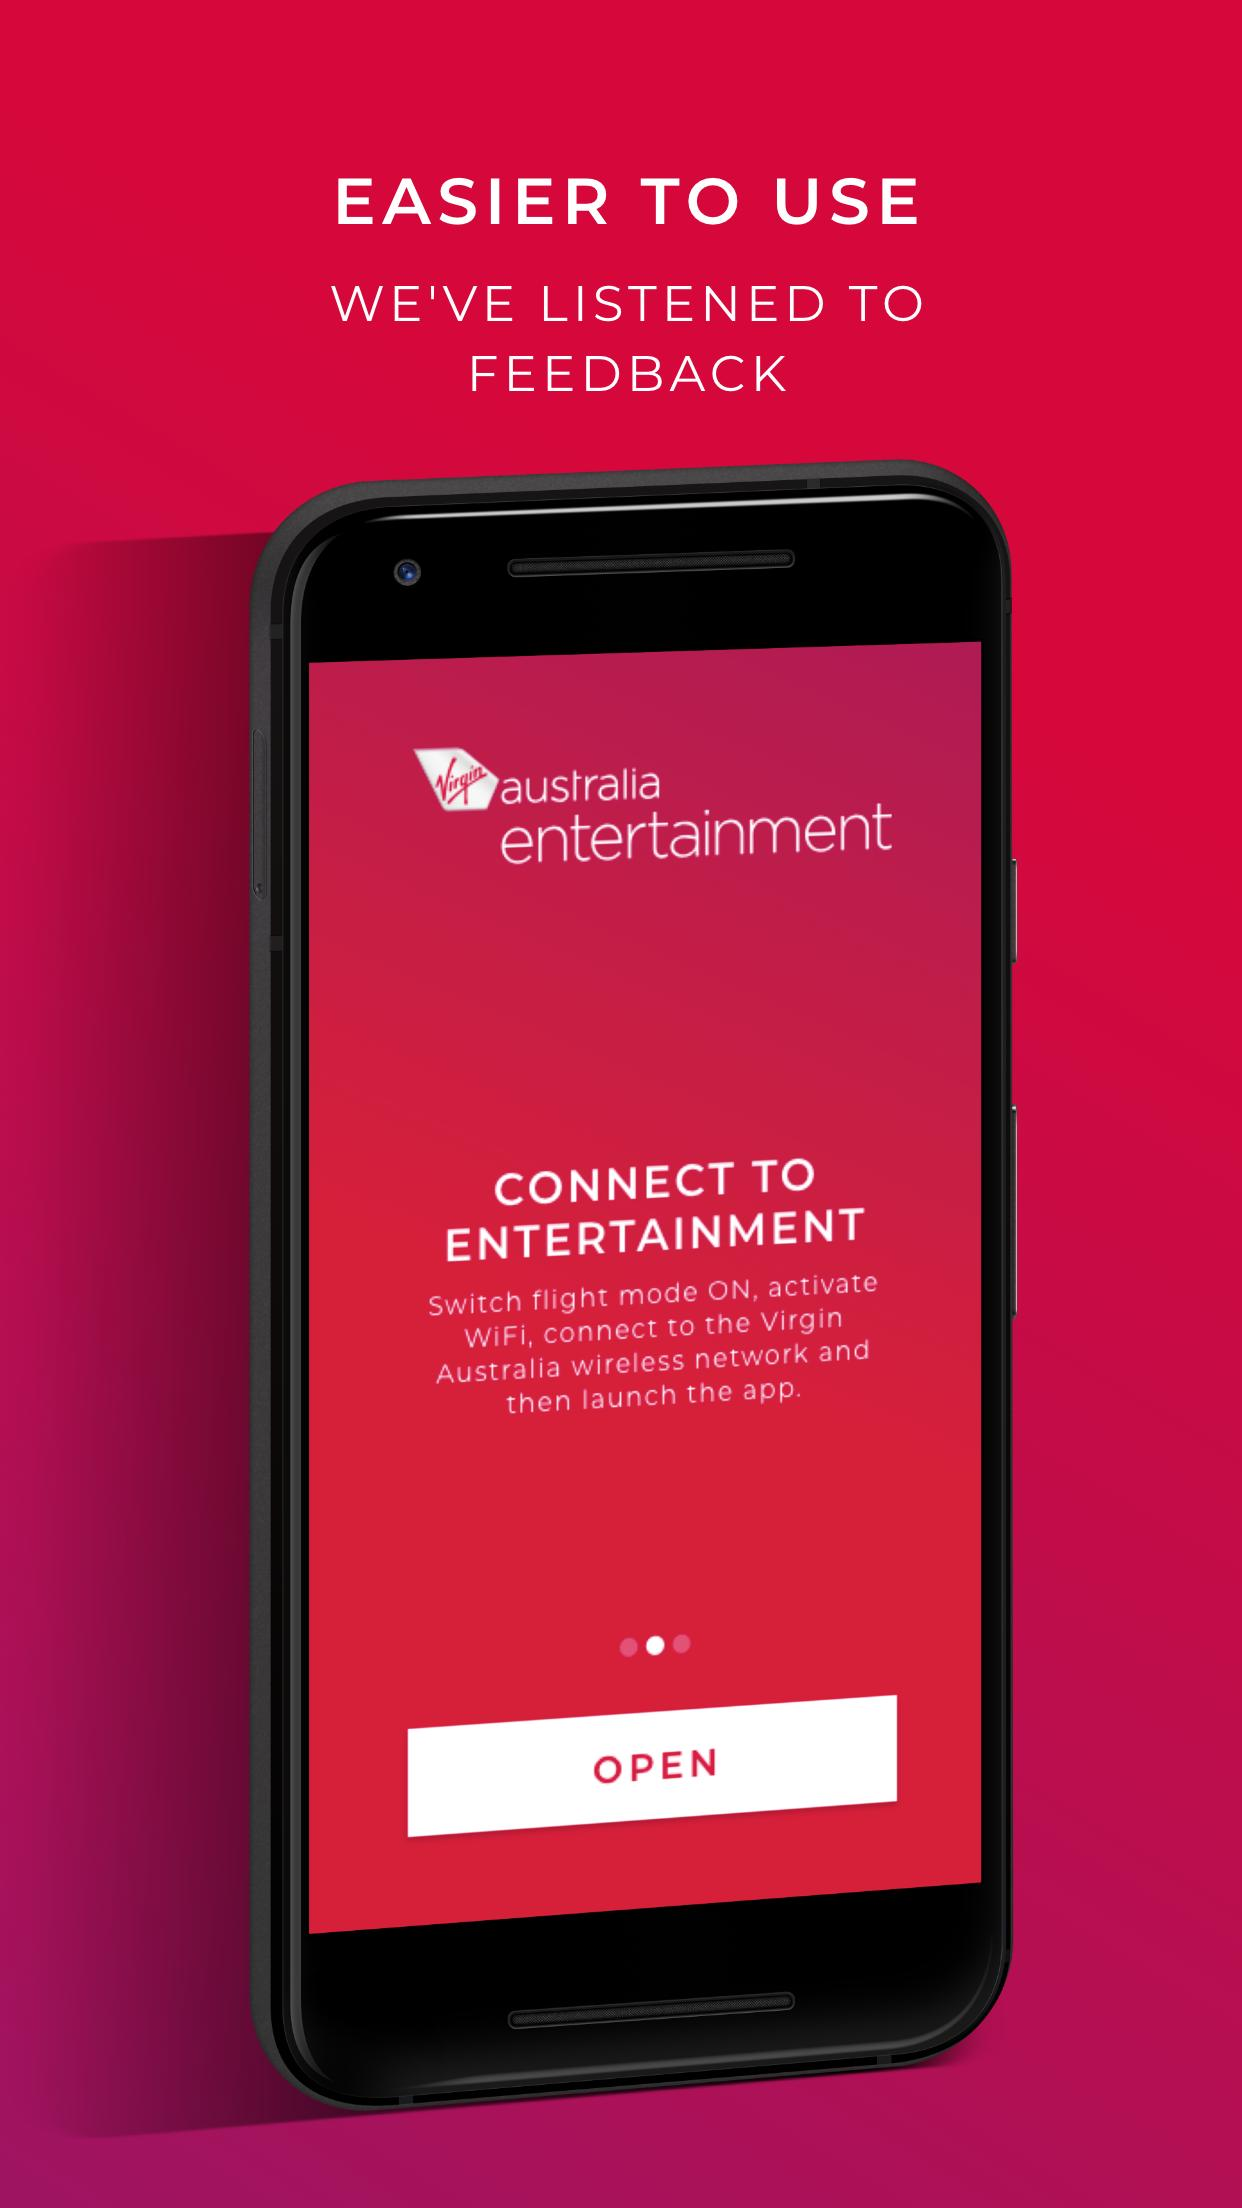 Virgin Australia for Android - APK Download